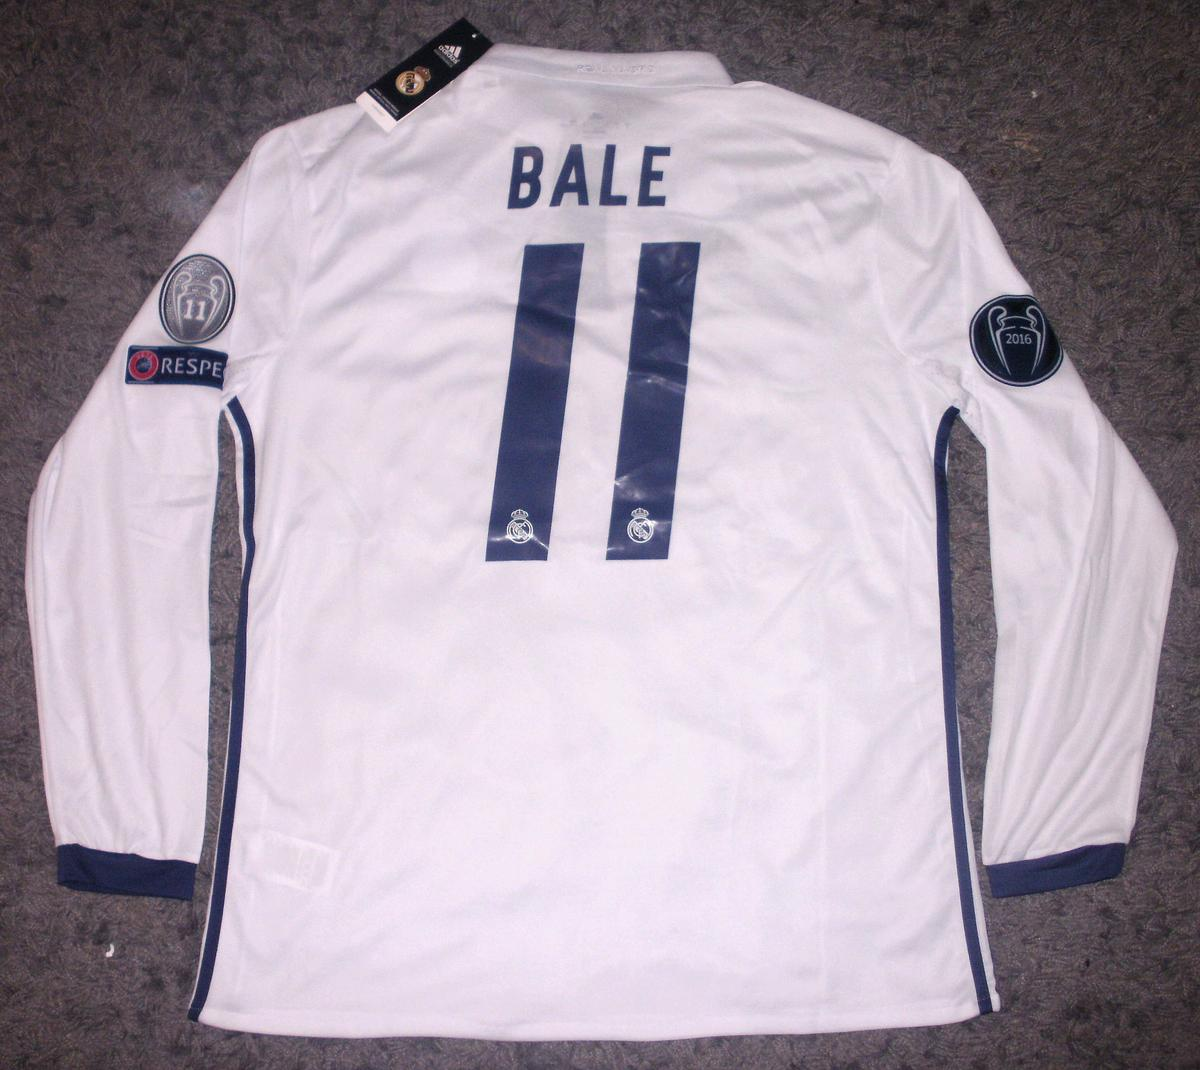 reputable site 04f3a b4192 Real Madrid Long Sleeve BALE Football Shirt in DY5 Dudley ...